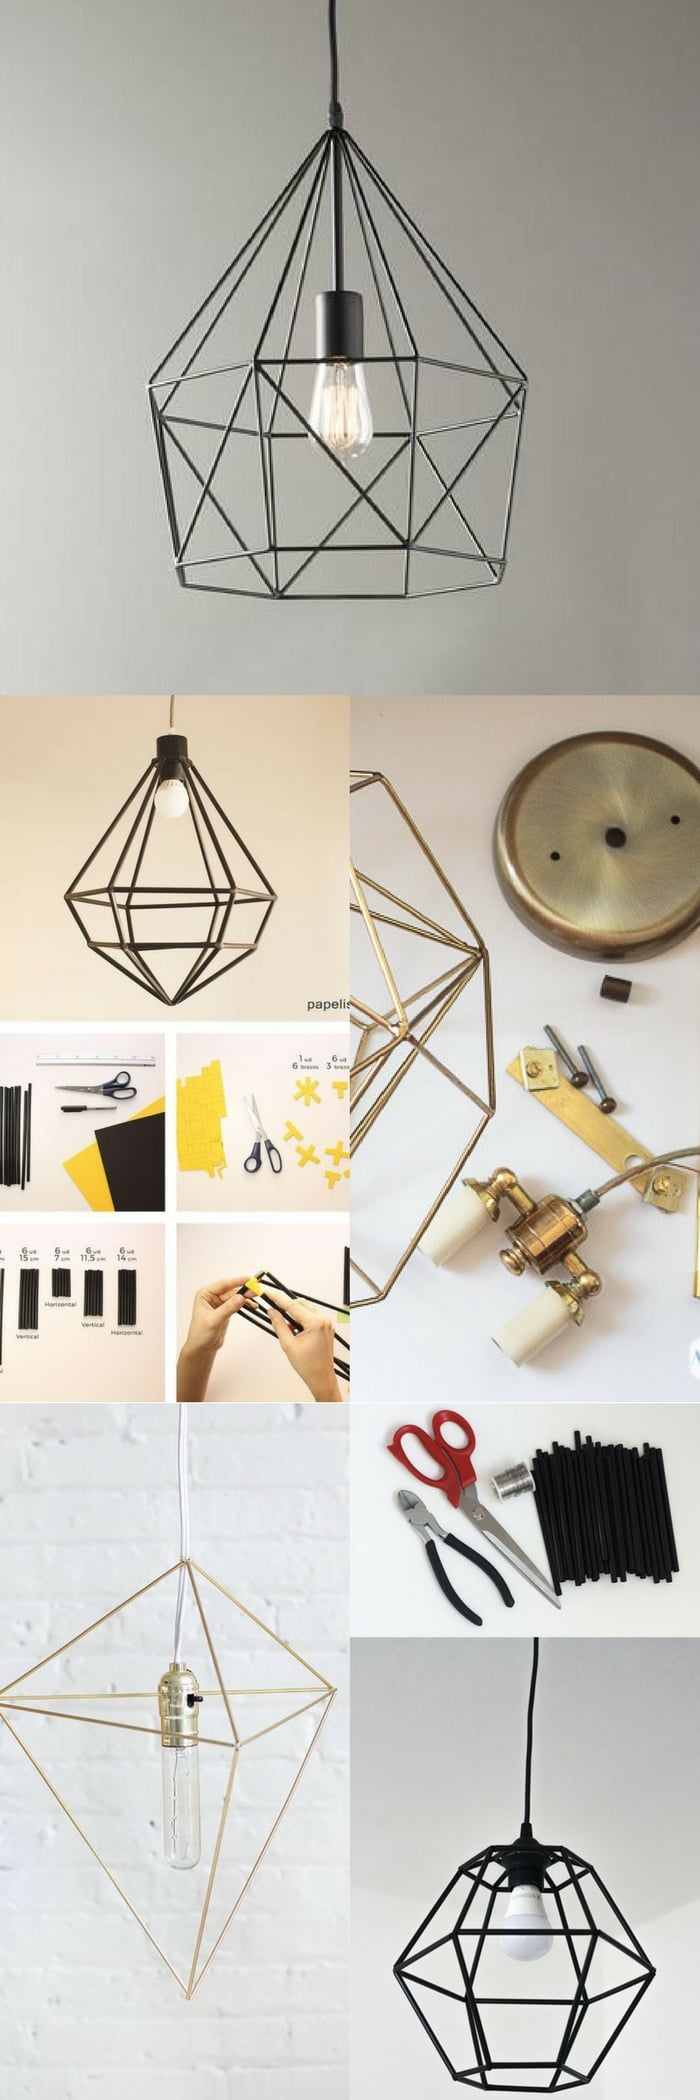 geometric lamp diy